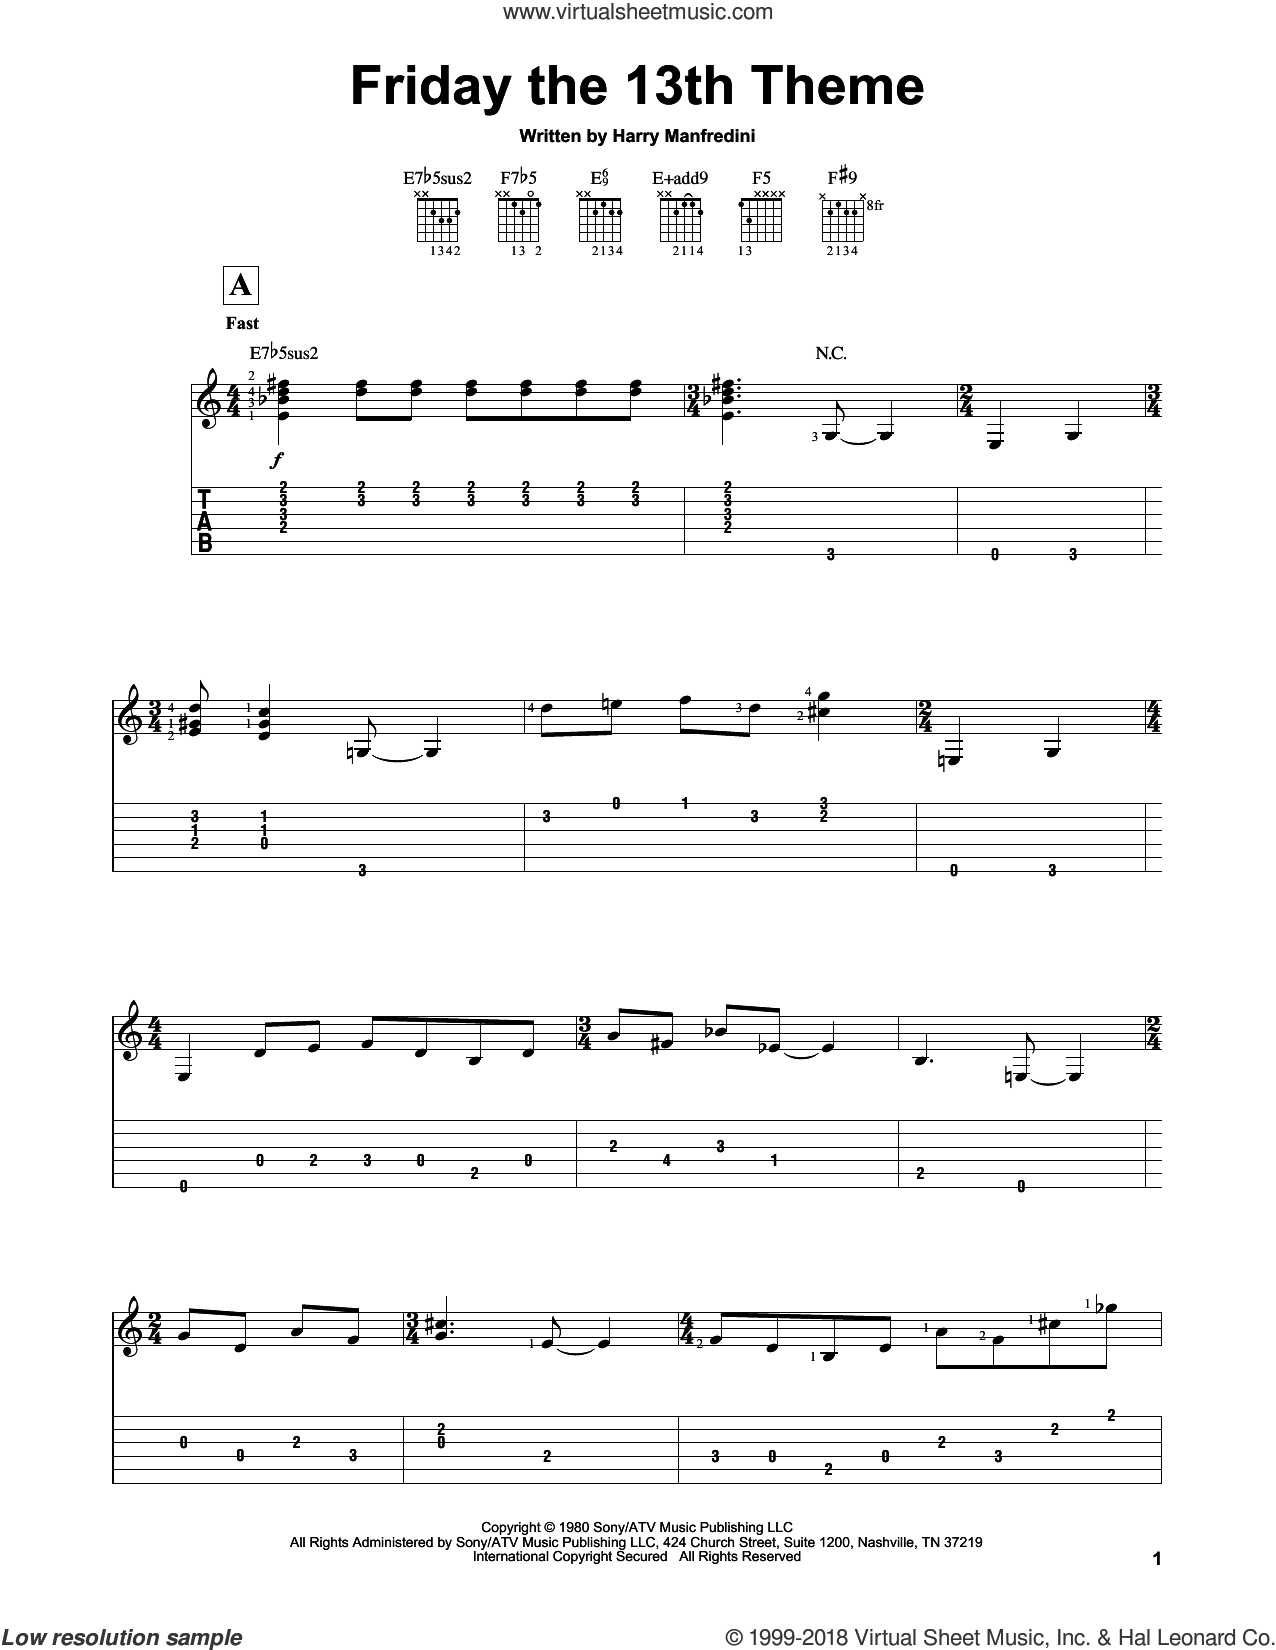 Friday The 13th Theme sheet music for guitar solo (easy tablature) by Harry Manfredini. Score Image Preview.